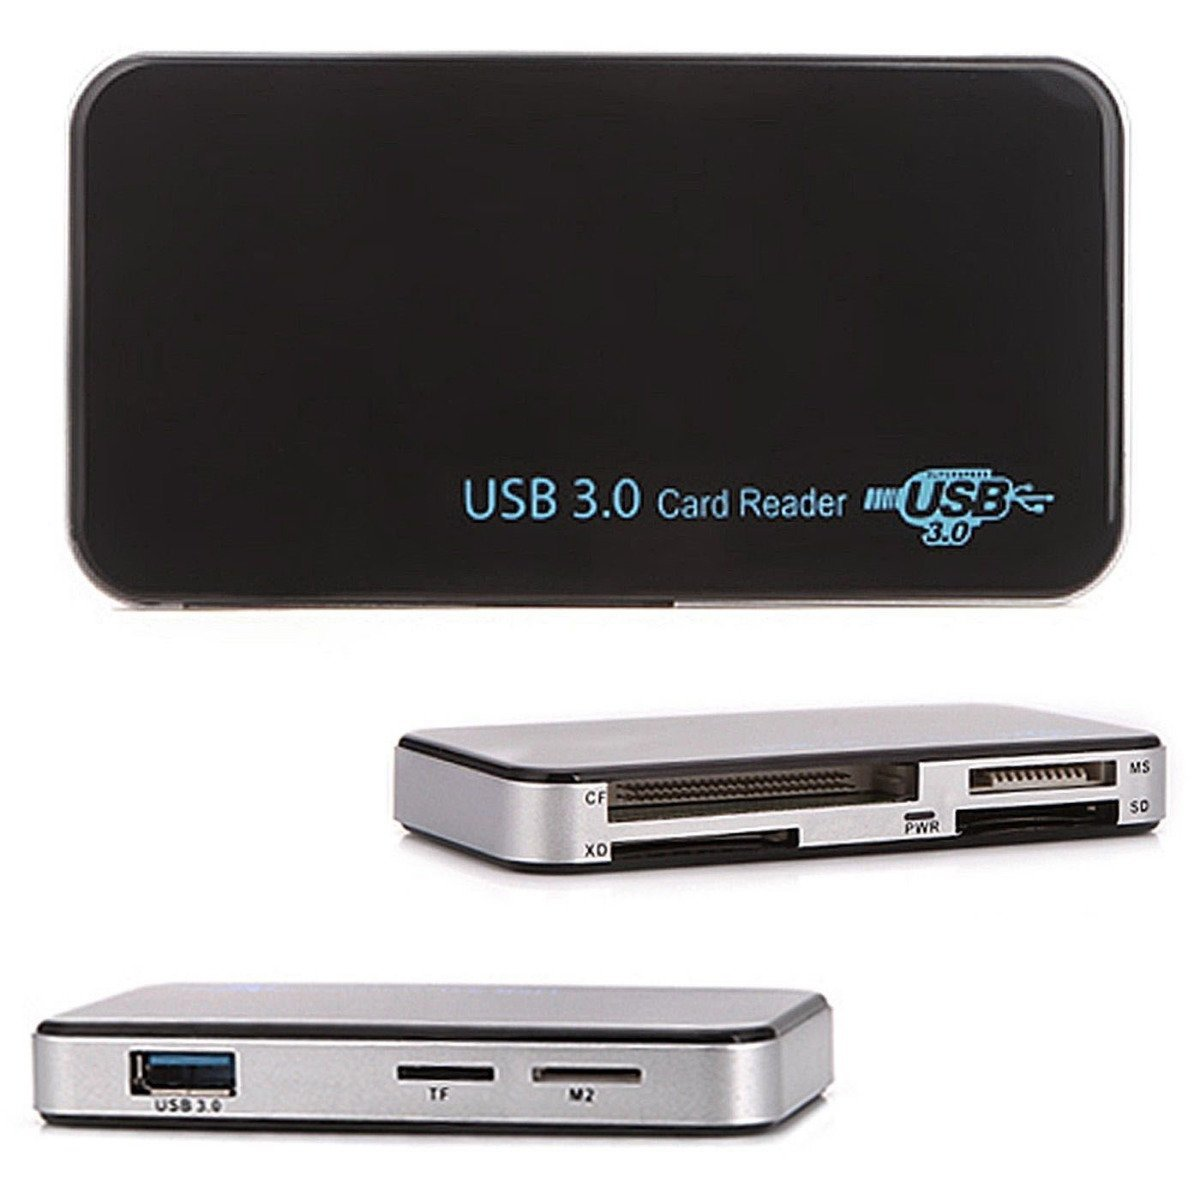 USB 3.0 Compact Flash/Memory Card Reader